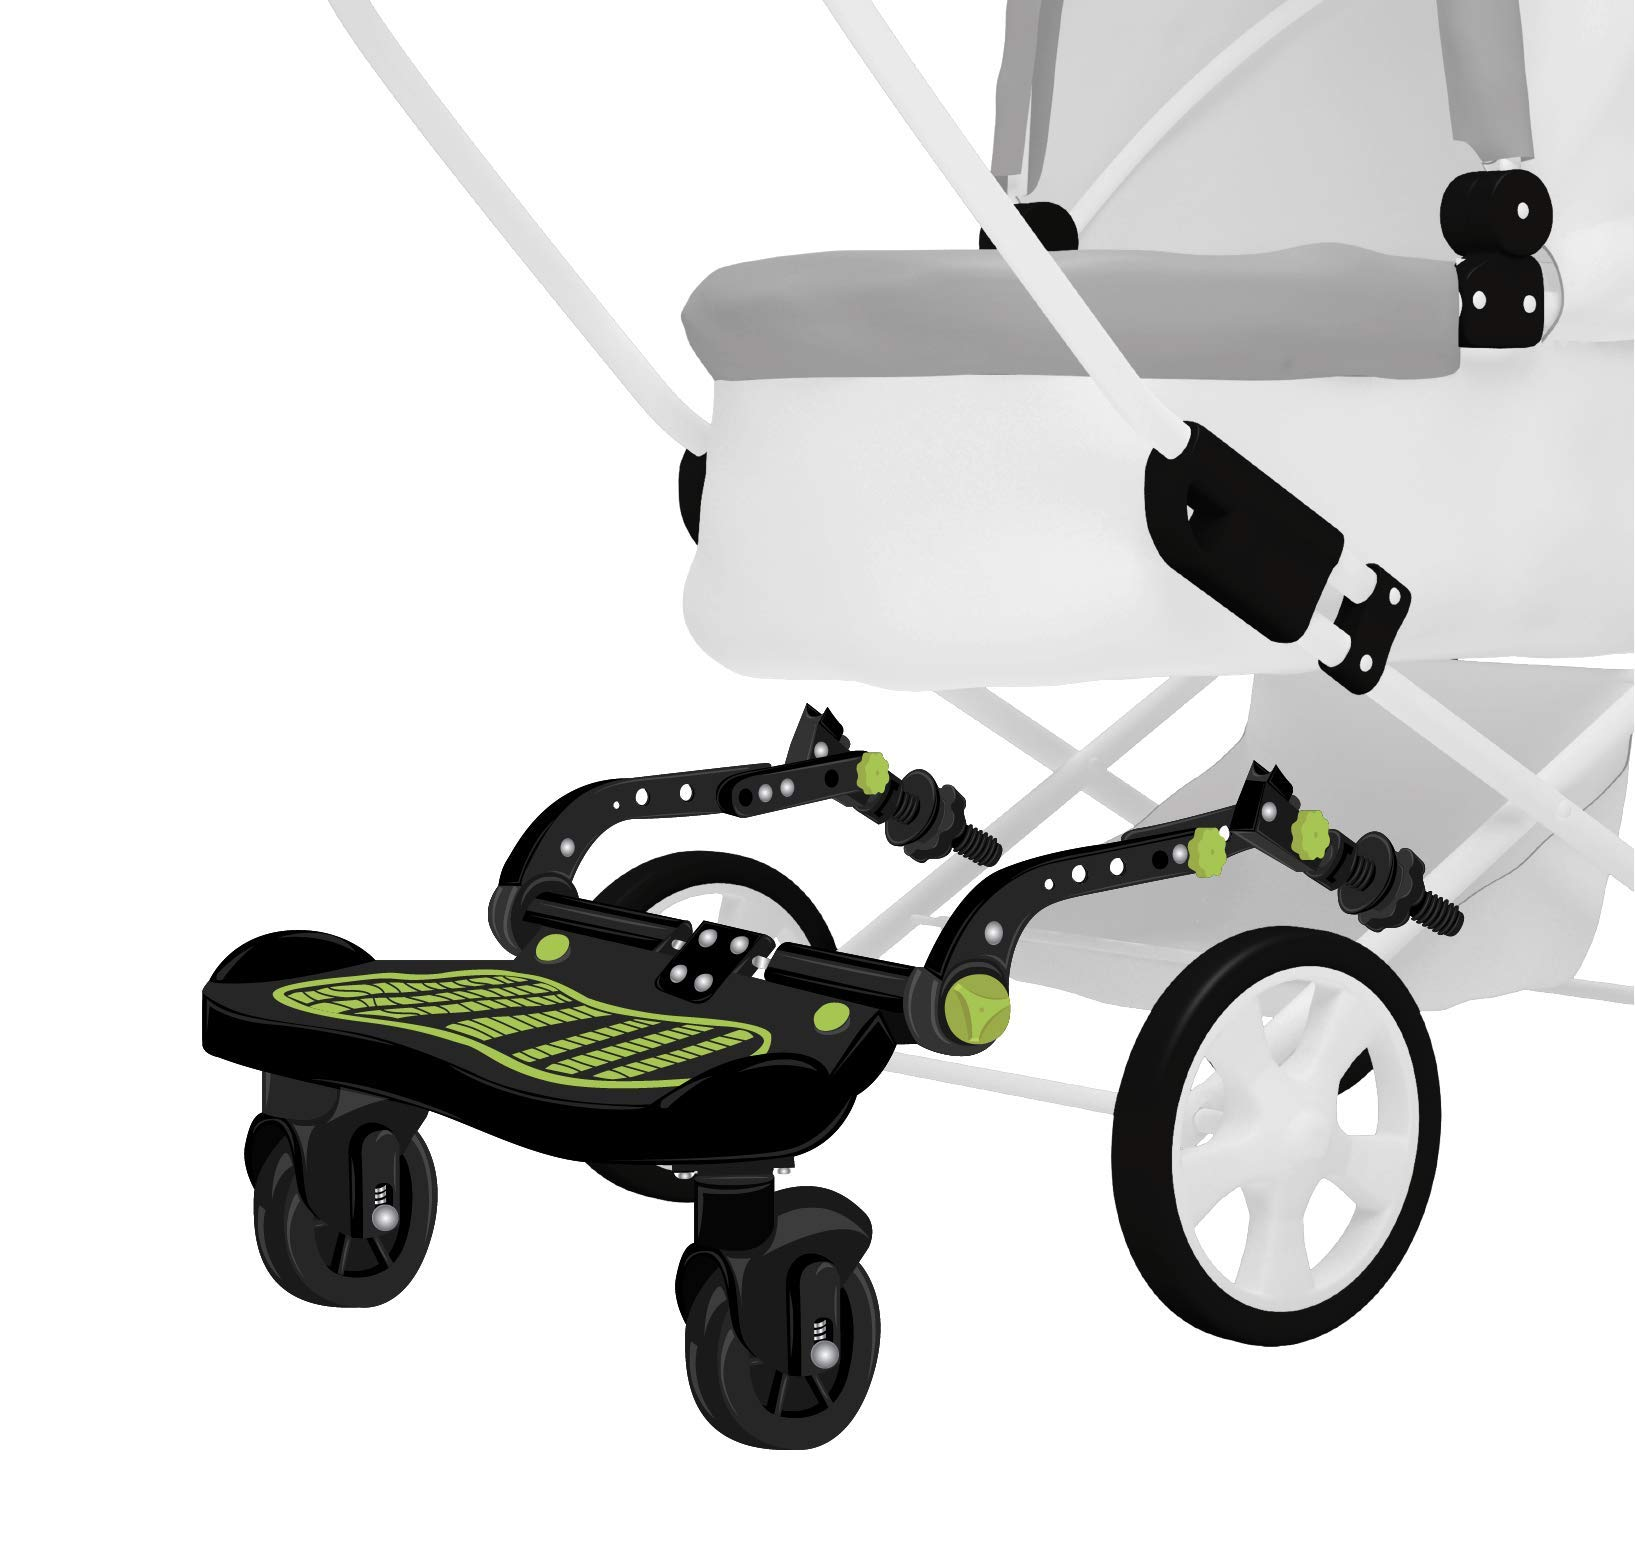 Universal Stroller Glider Board for Kids | Latch System for Easy Setup | Supports up to 70 lbs. | Reinforced Stand Board with Non-Slip Adhesive, Higher and Wider Feet Clearance by W WHYSGIVING